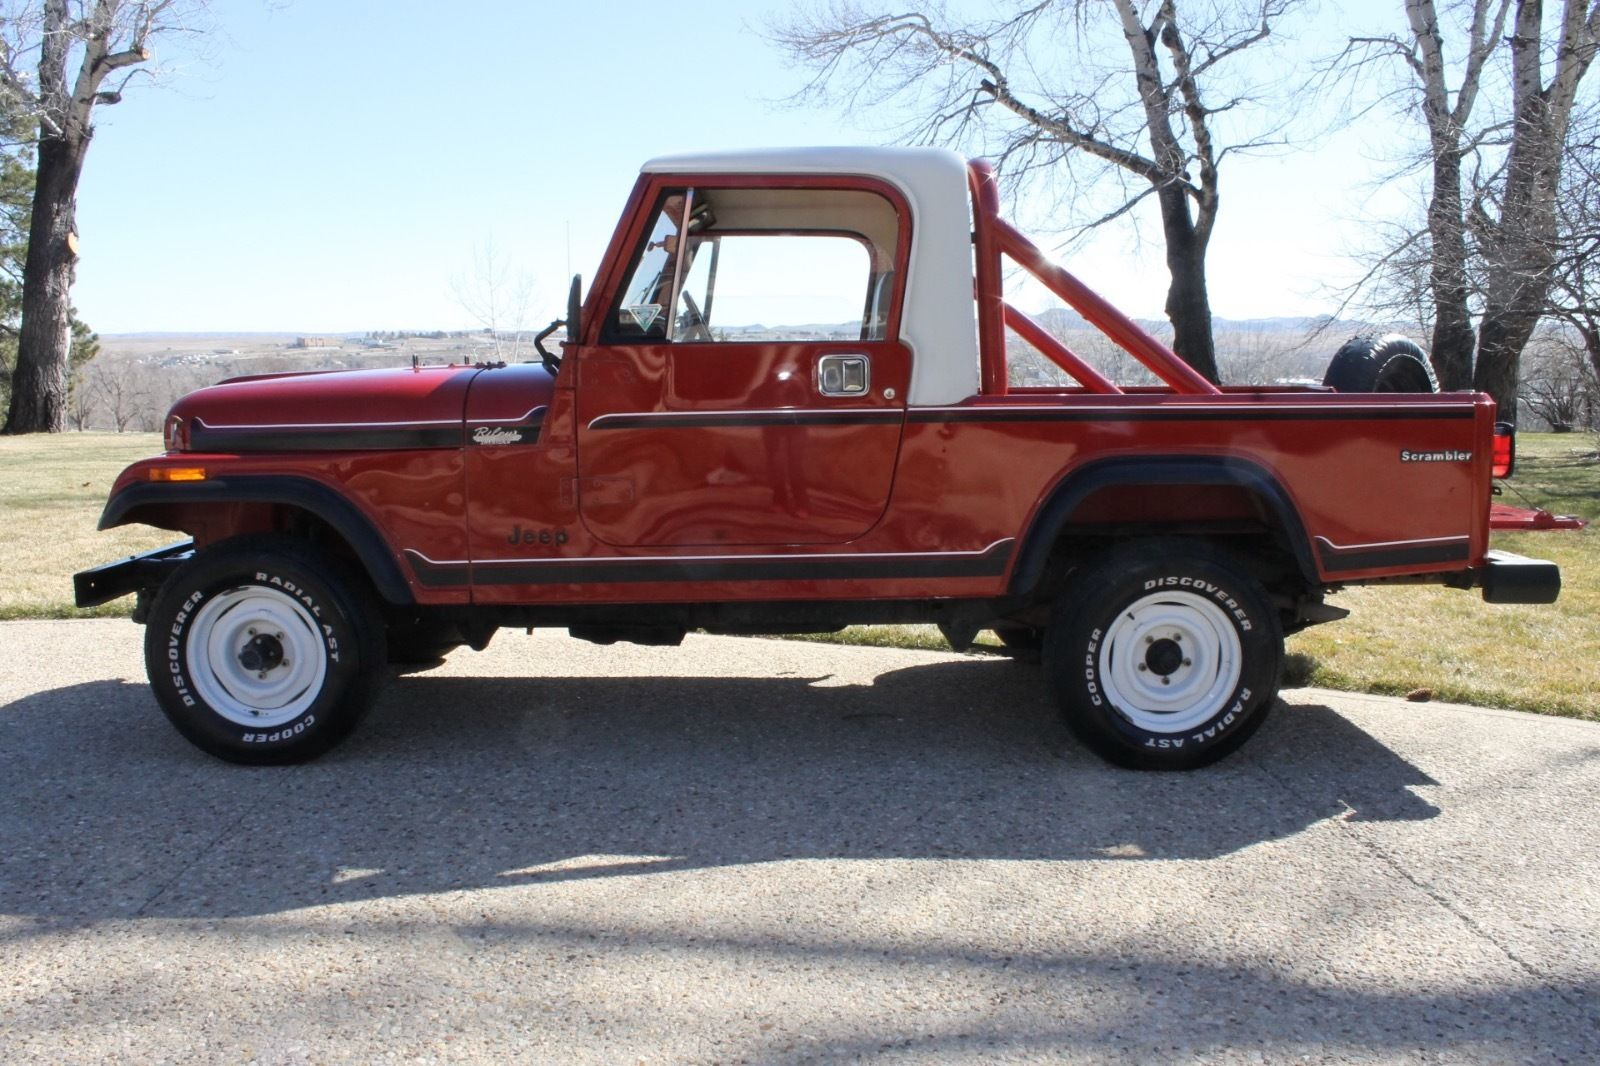 1985-Jeep-Scrambler-side